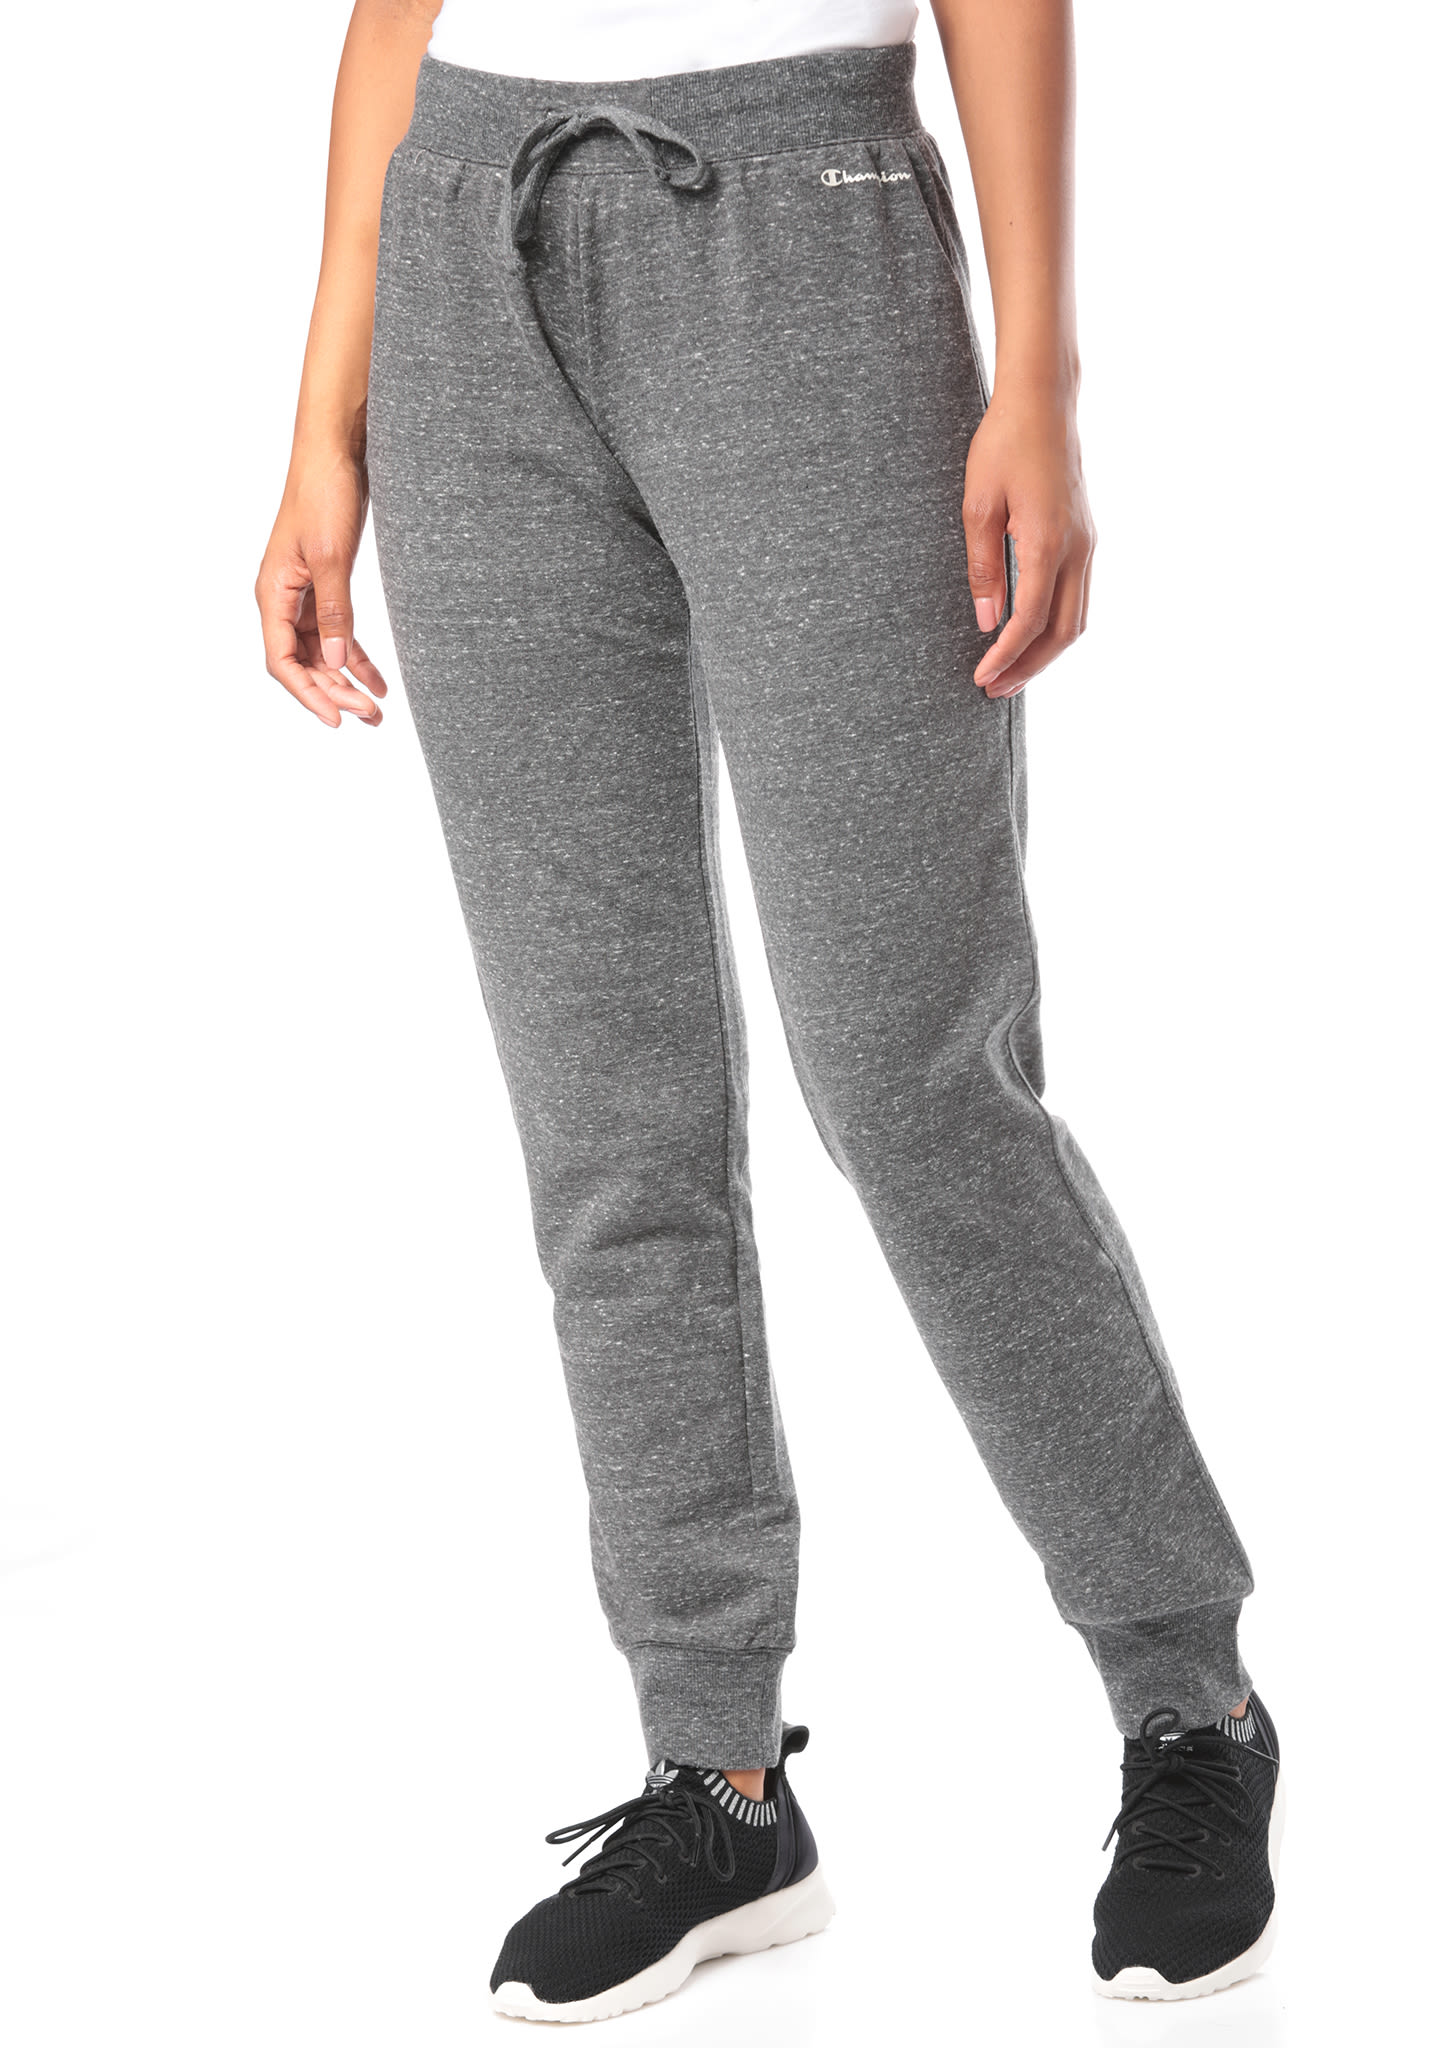 b1b3e8b18a60 Champion Rib Cuff - Trackpants for Women - Grey - Planet Sports